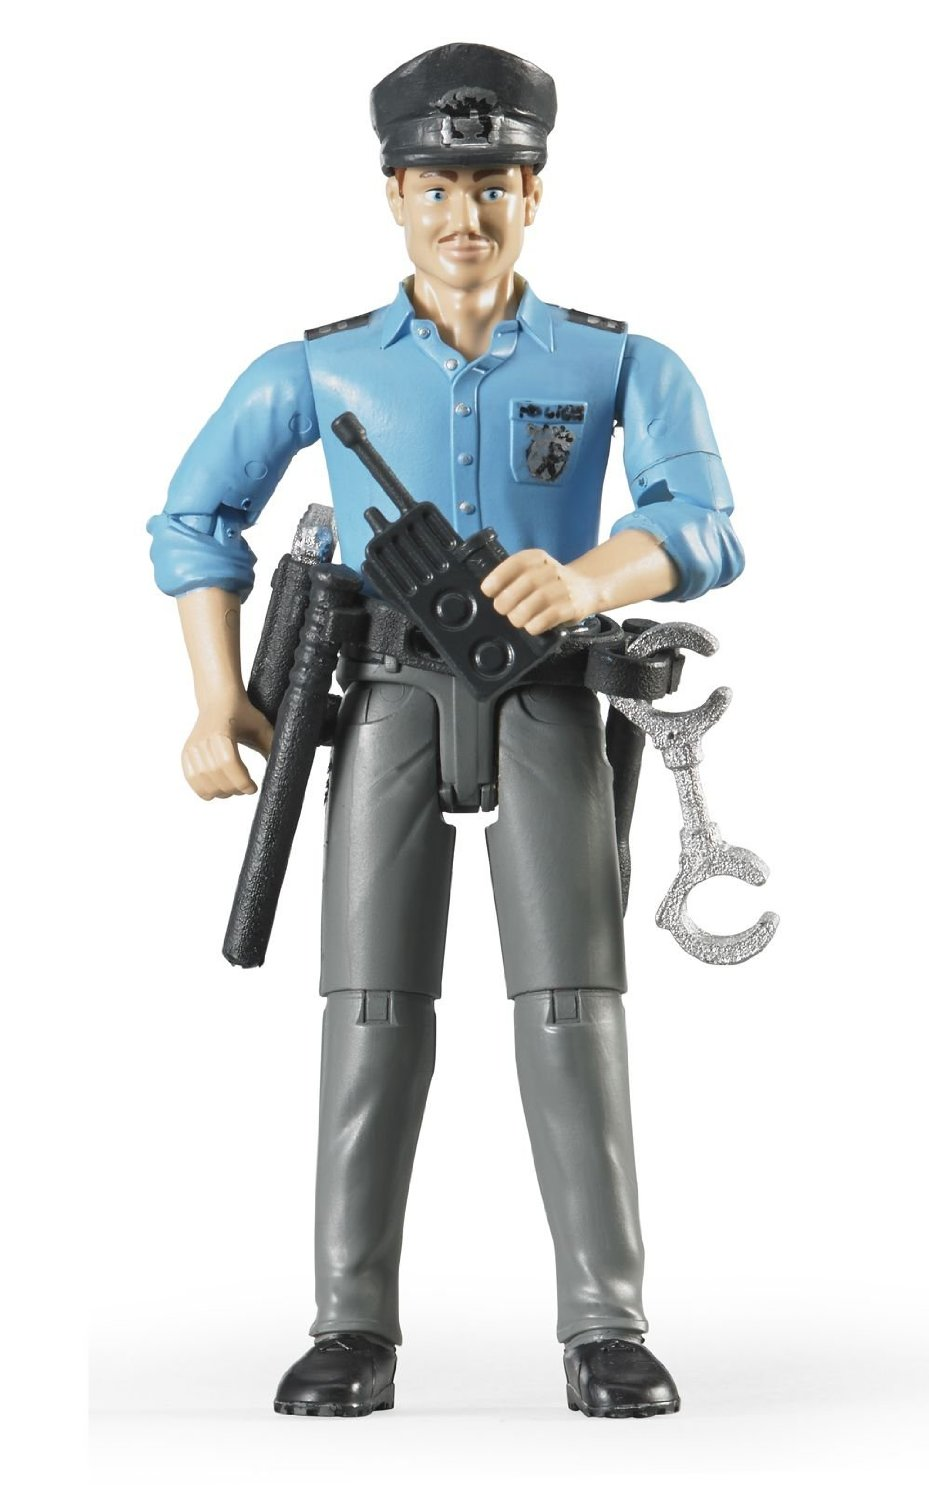 Bruder #60050 Policeman with Light Skin and Accessories - New Factory Sealed